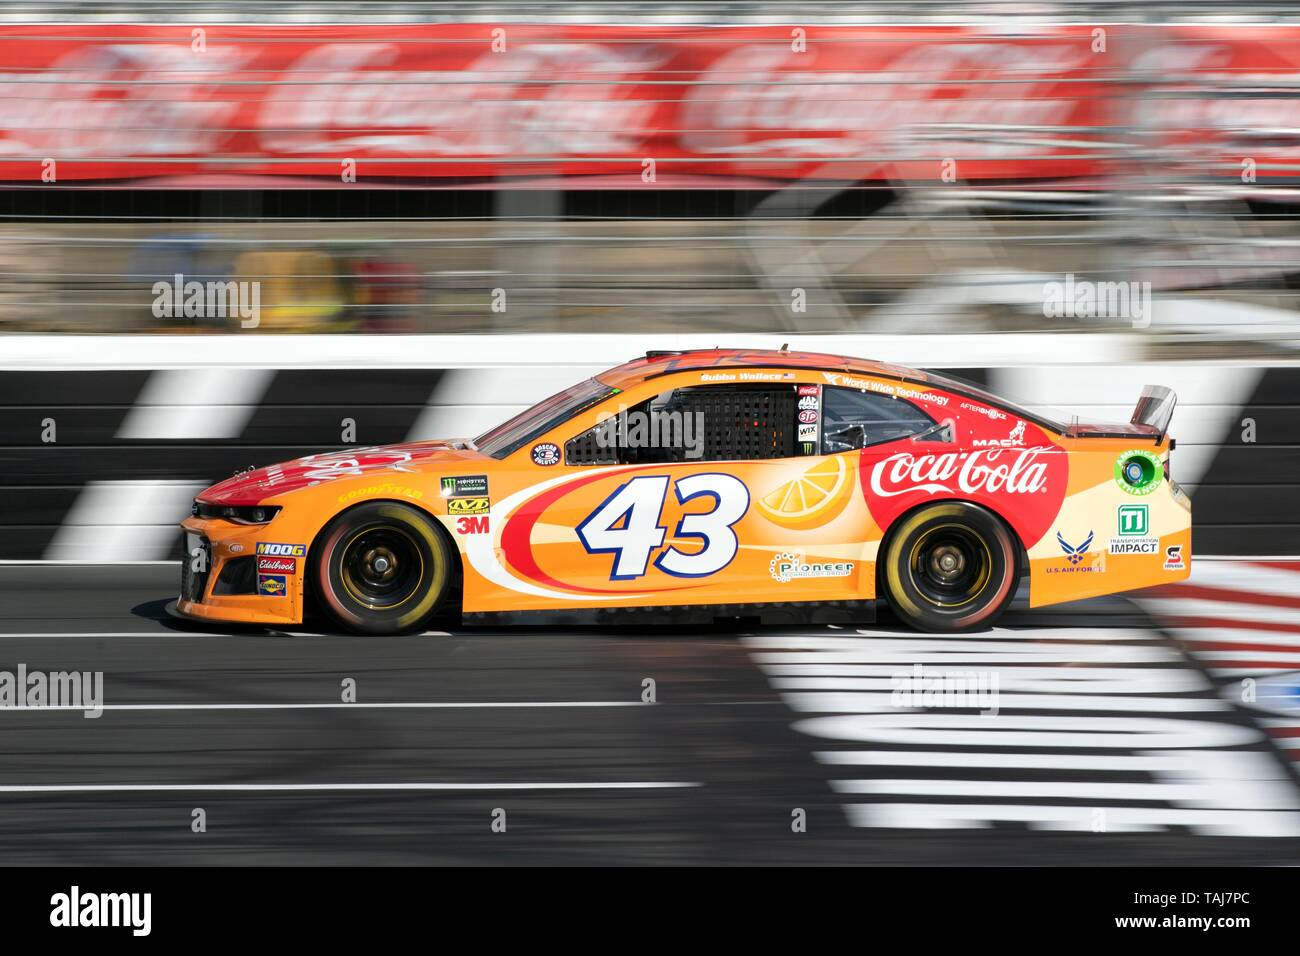 NASCAR driver Bubba Wallace driving #43 in qualifiers for the Coca Cola 600 at Charlotte Motor Speedway May 25, 2019 in Concord, N.C. Credit: Planetpix/Alamy Live News - Stock Image